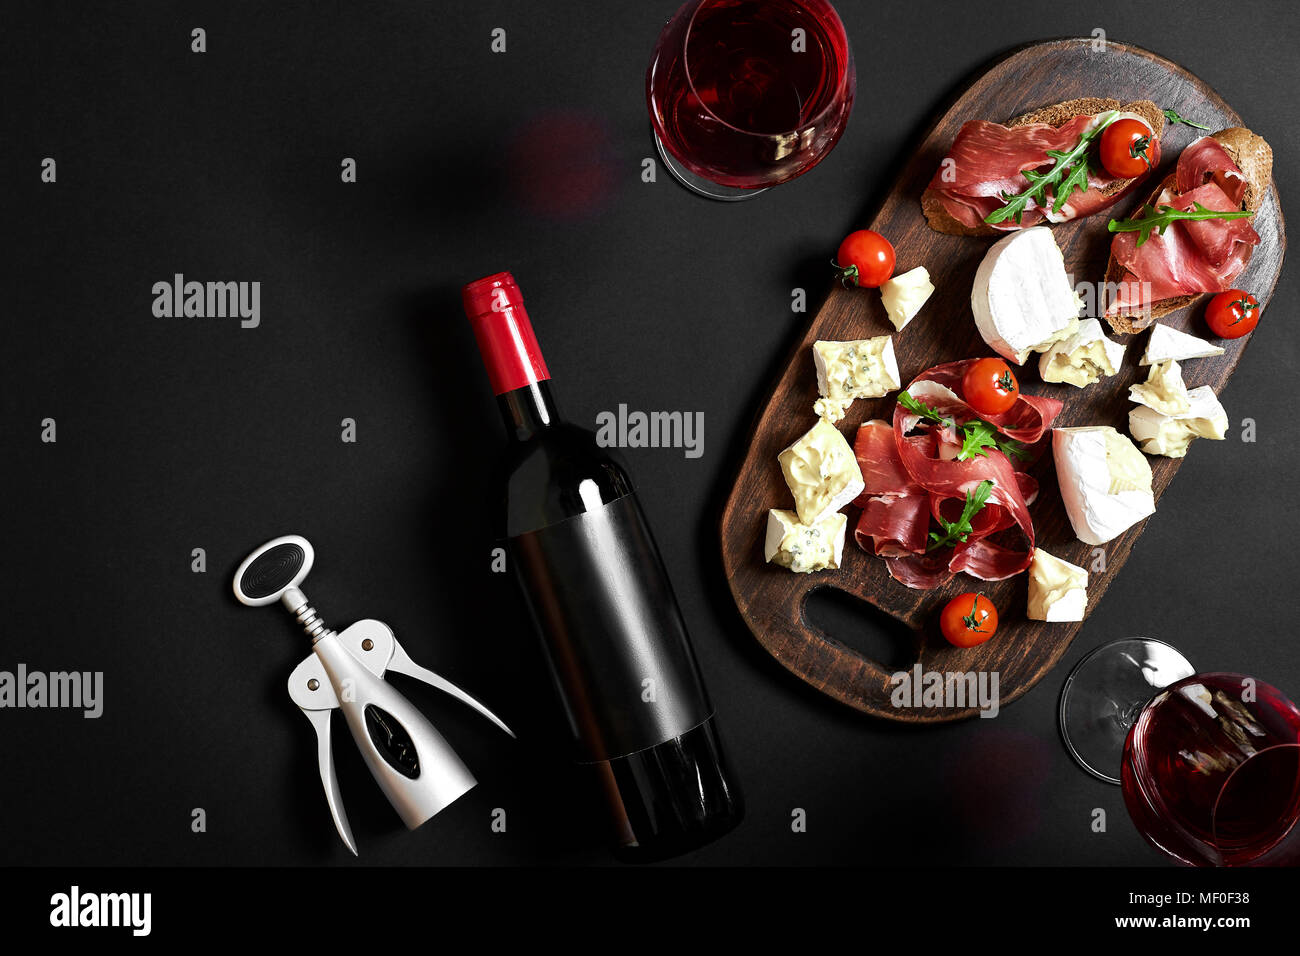 Delicious appetizer to wine - ham, cheese, baguette slices, tomatoes, served on a wooden board, and glass with red wine on black surface Stock Photo